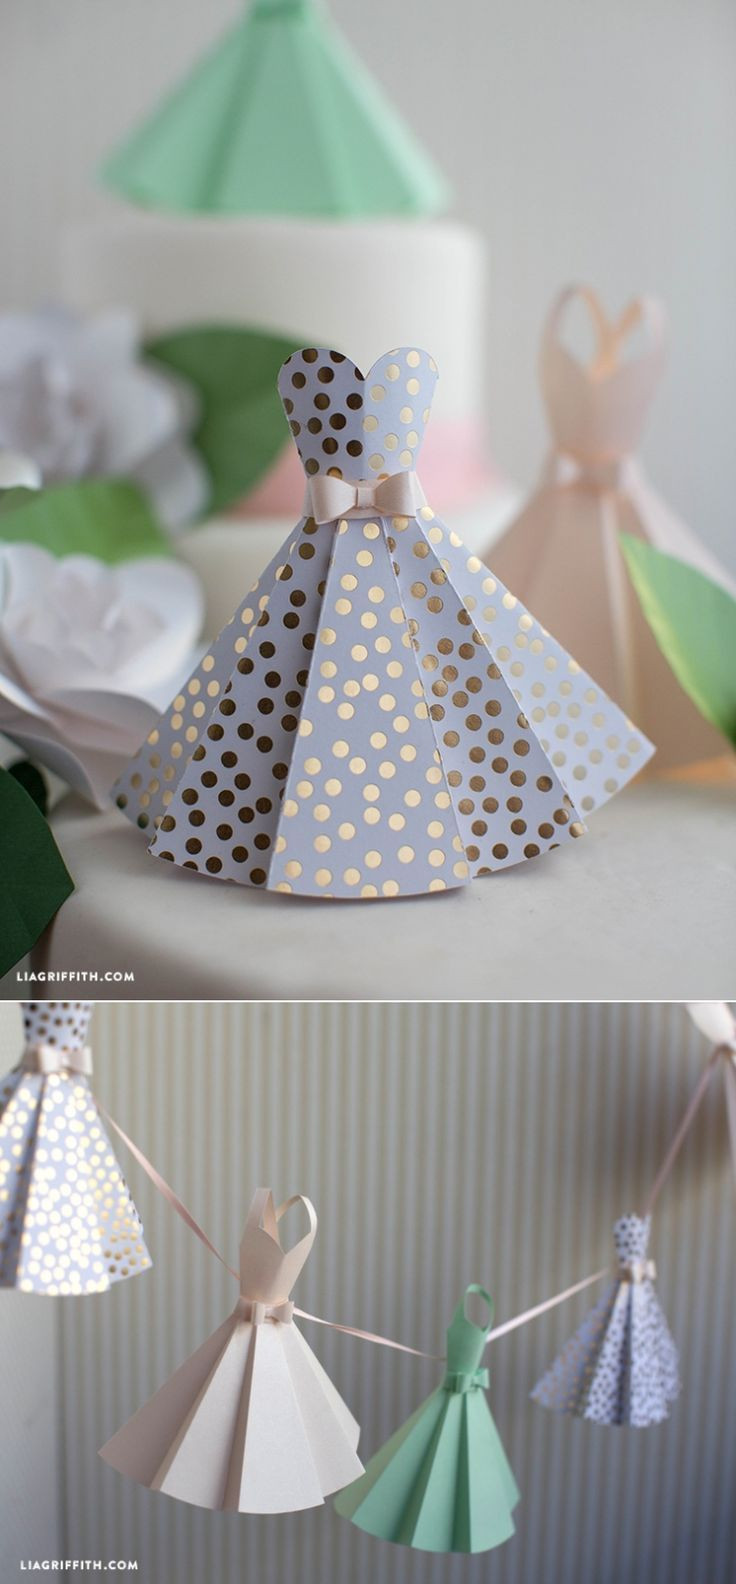 Best ideas about Wedding Craft Ideas . Save or Pin Paper Dress DIY Wedding Decorations Make Paper Now.